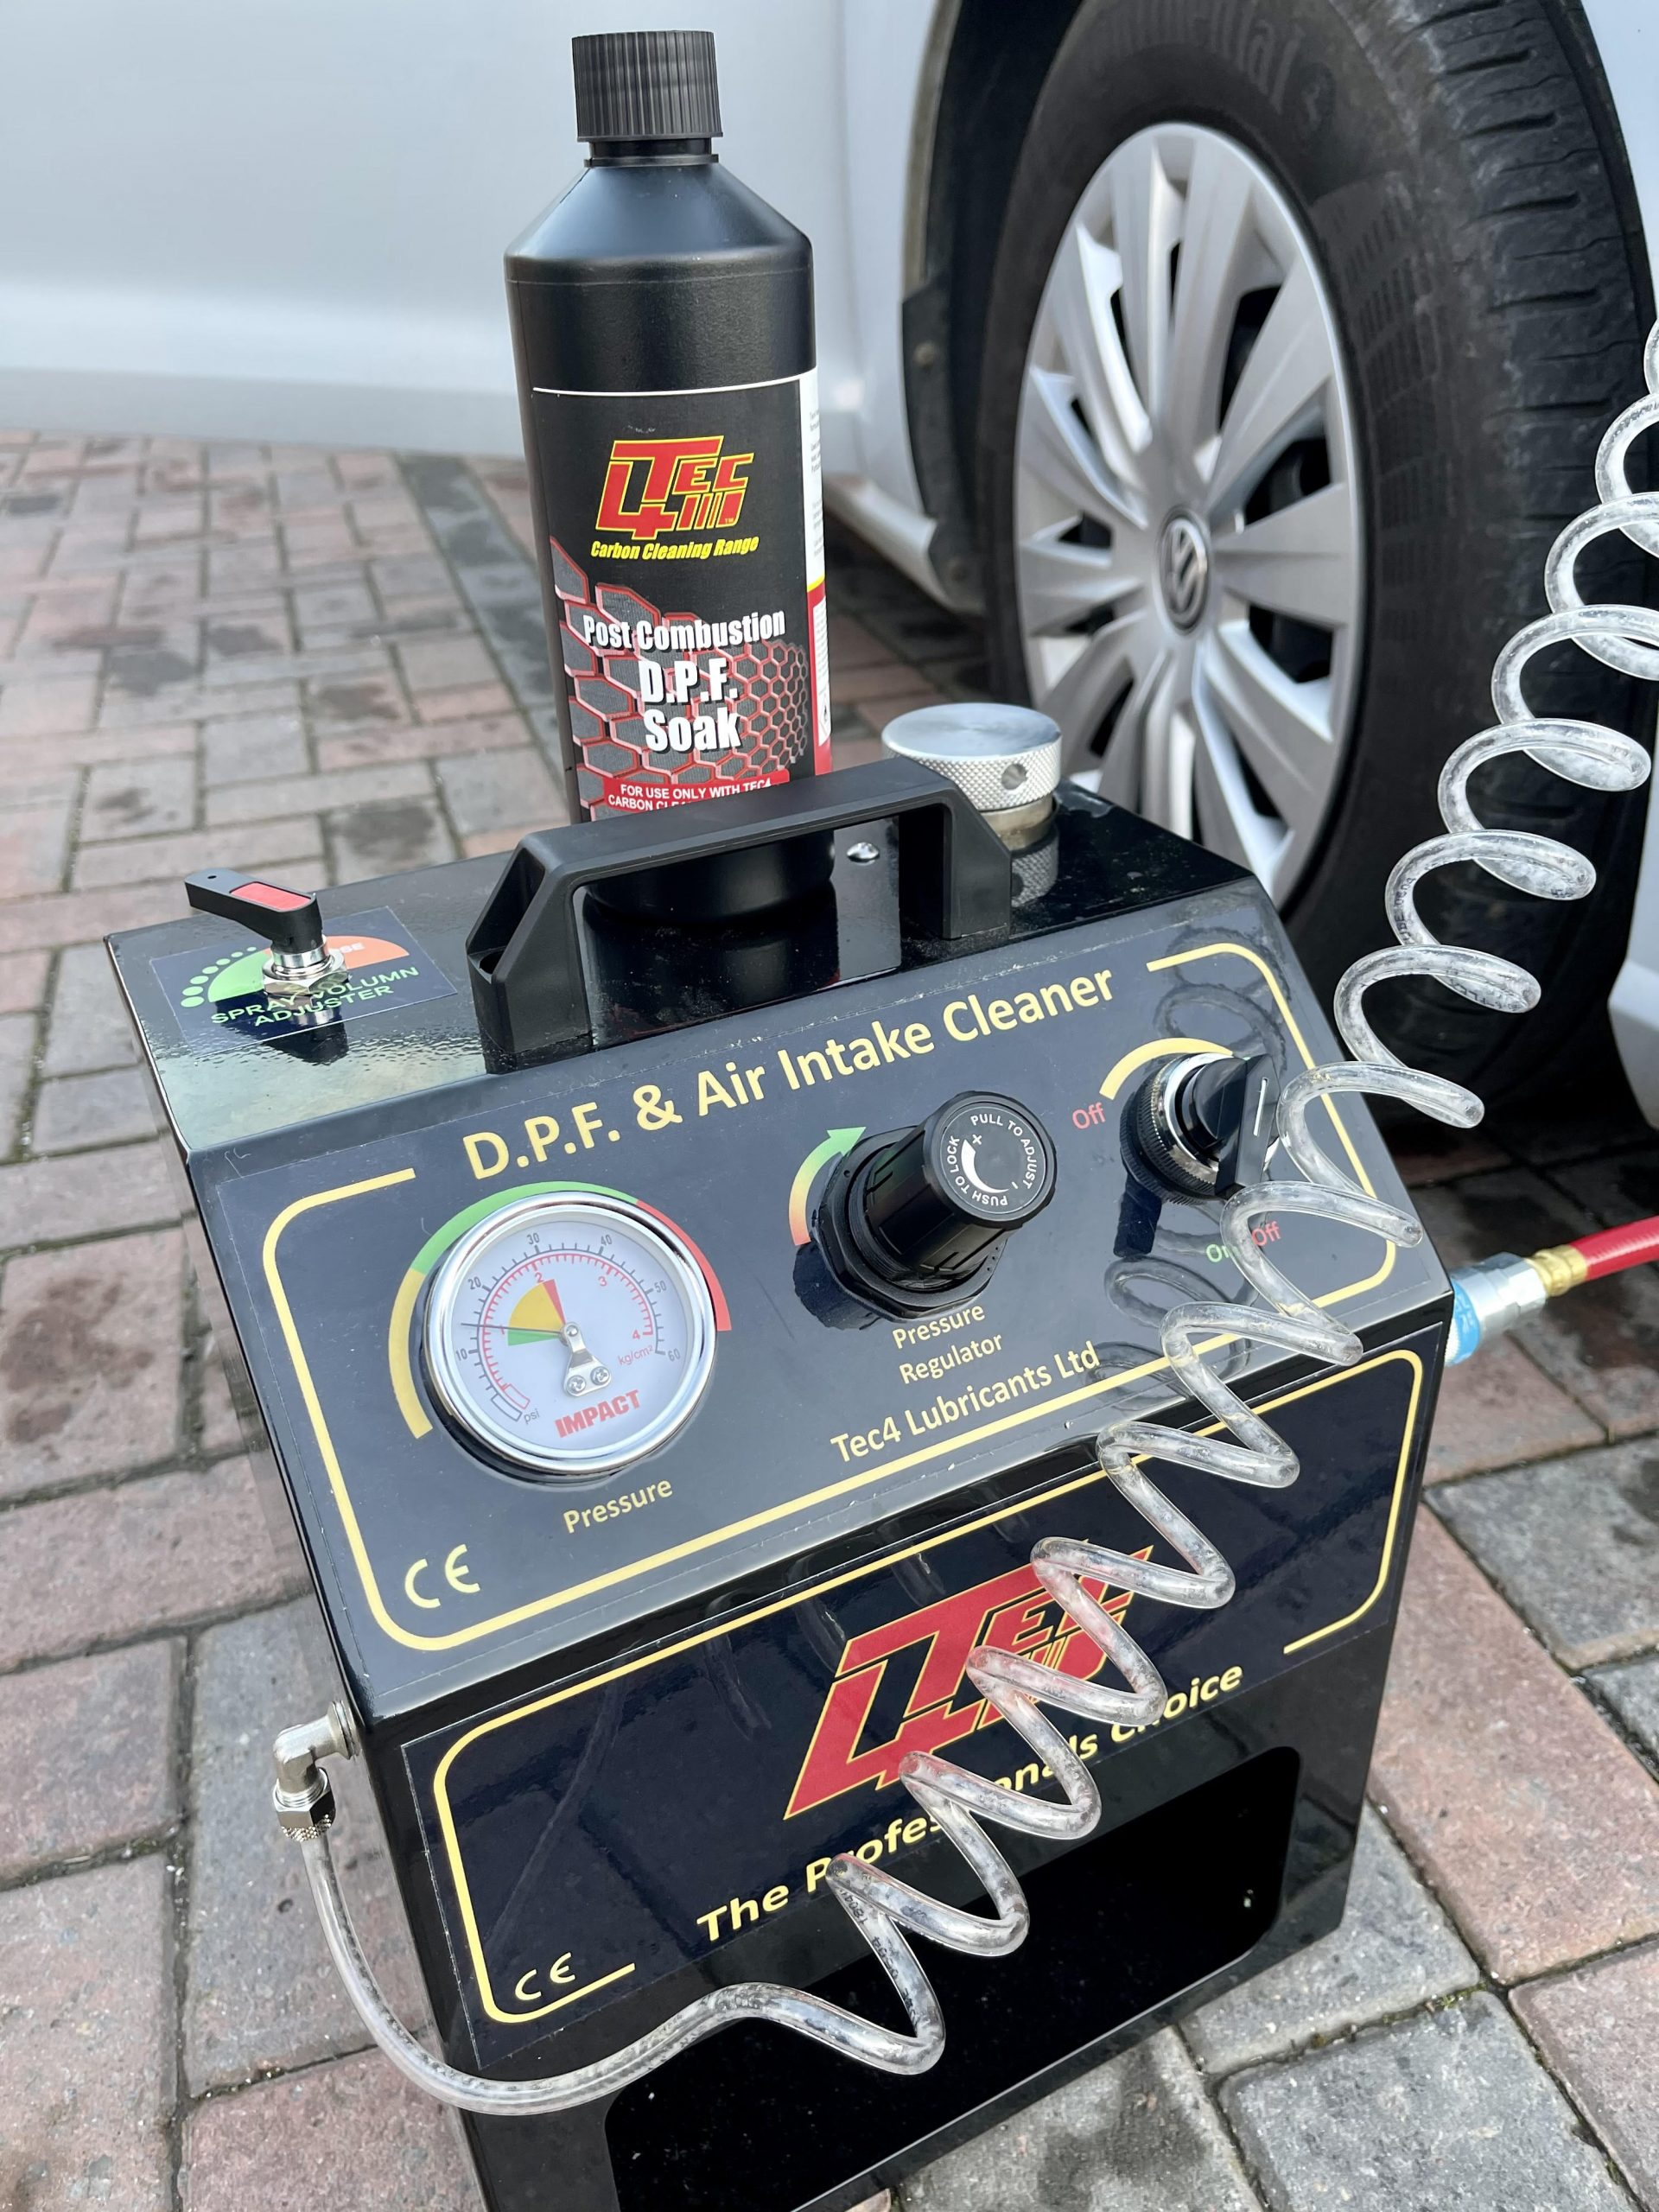 DPF cleaning equipment